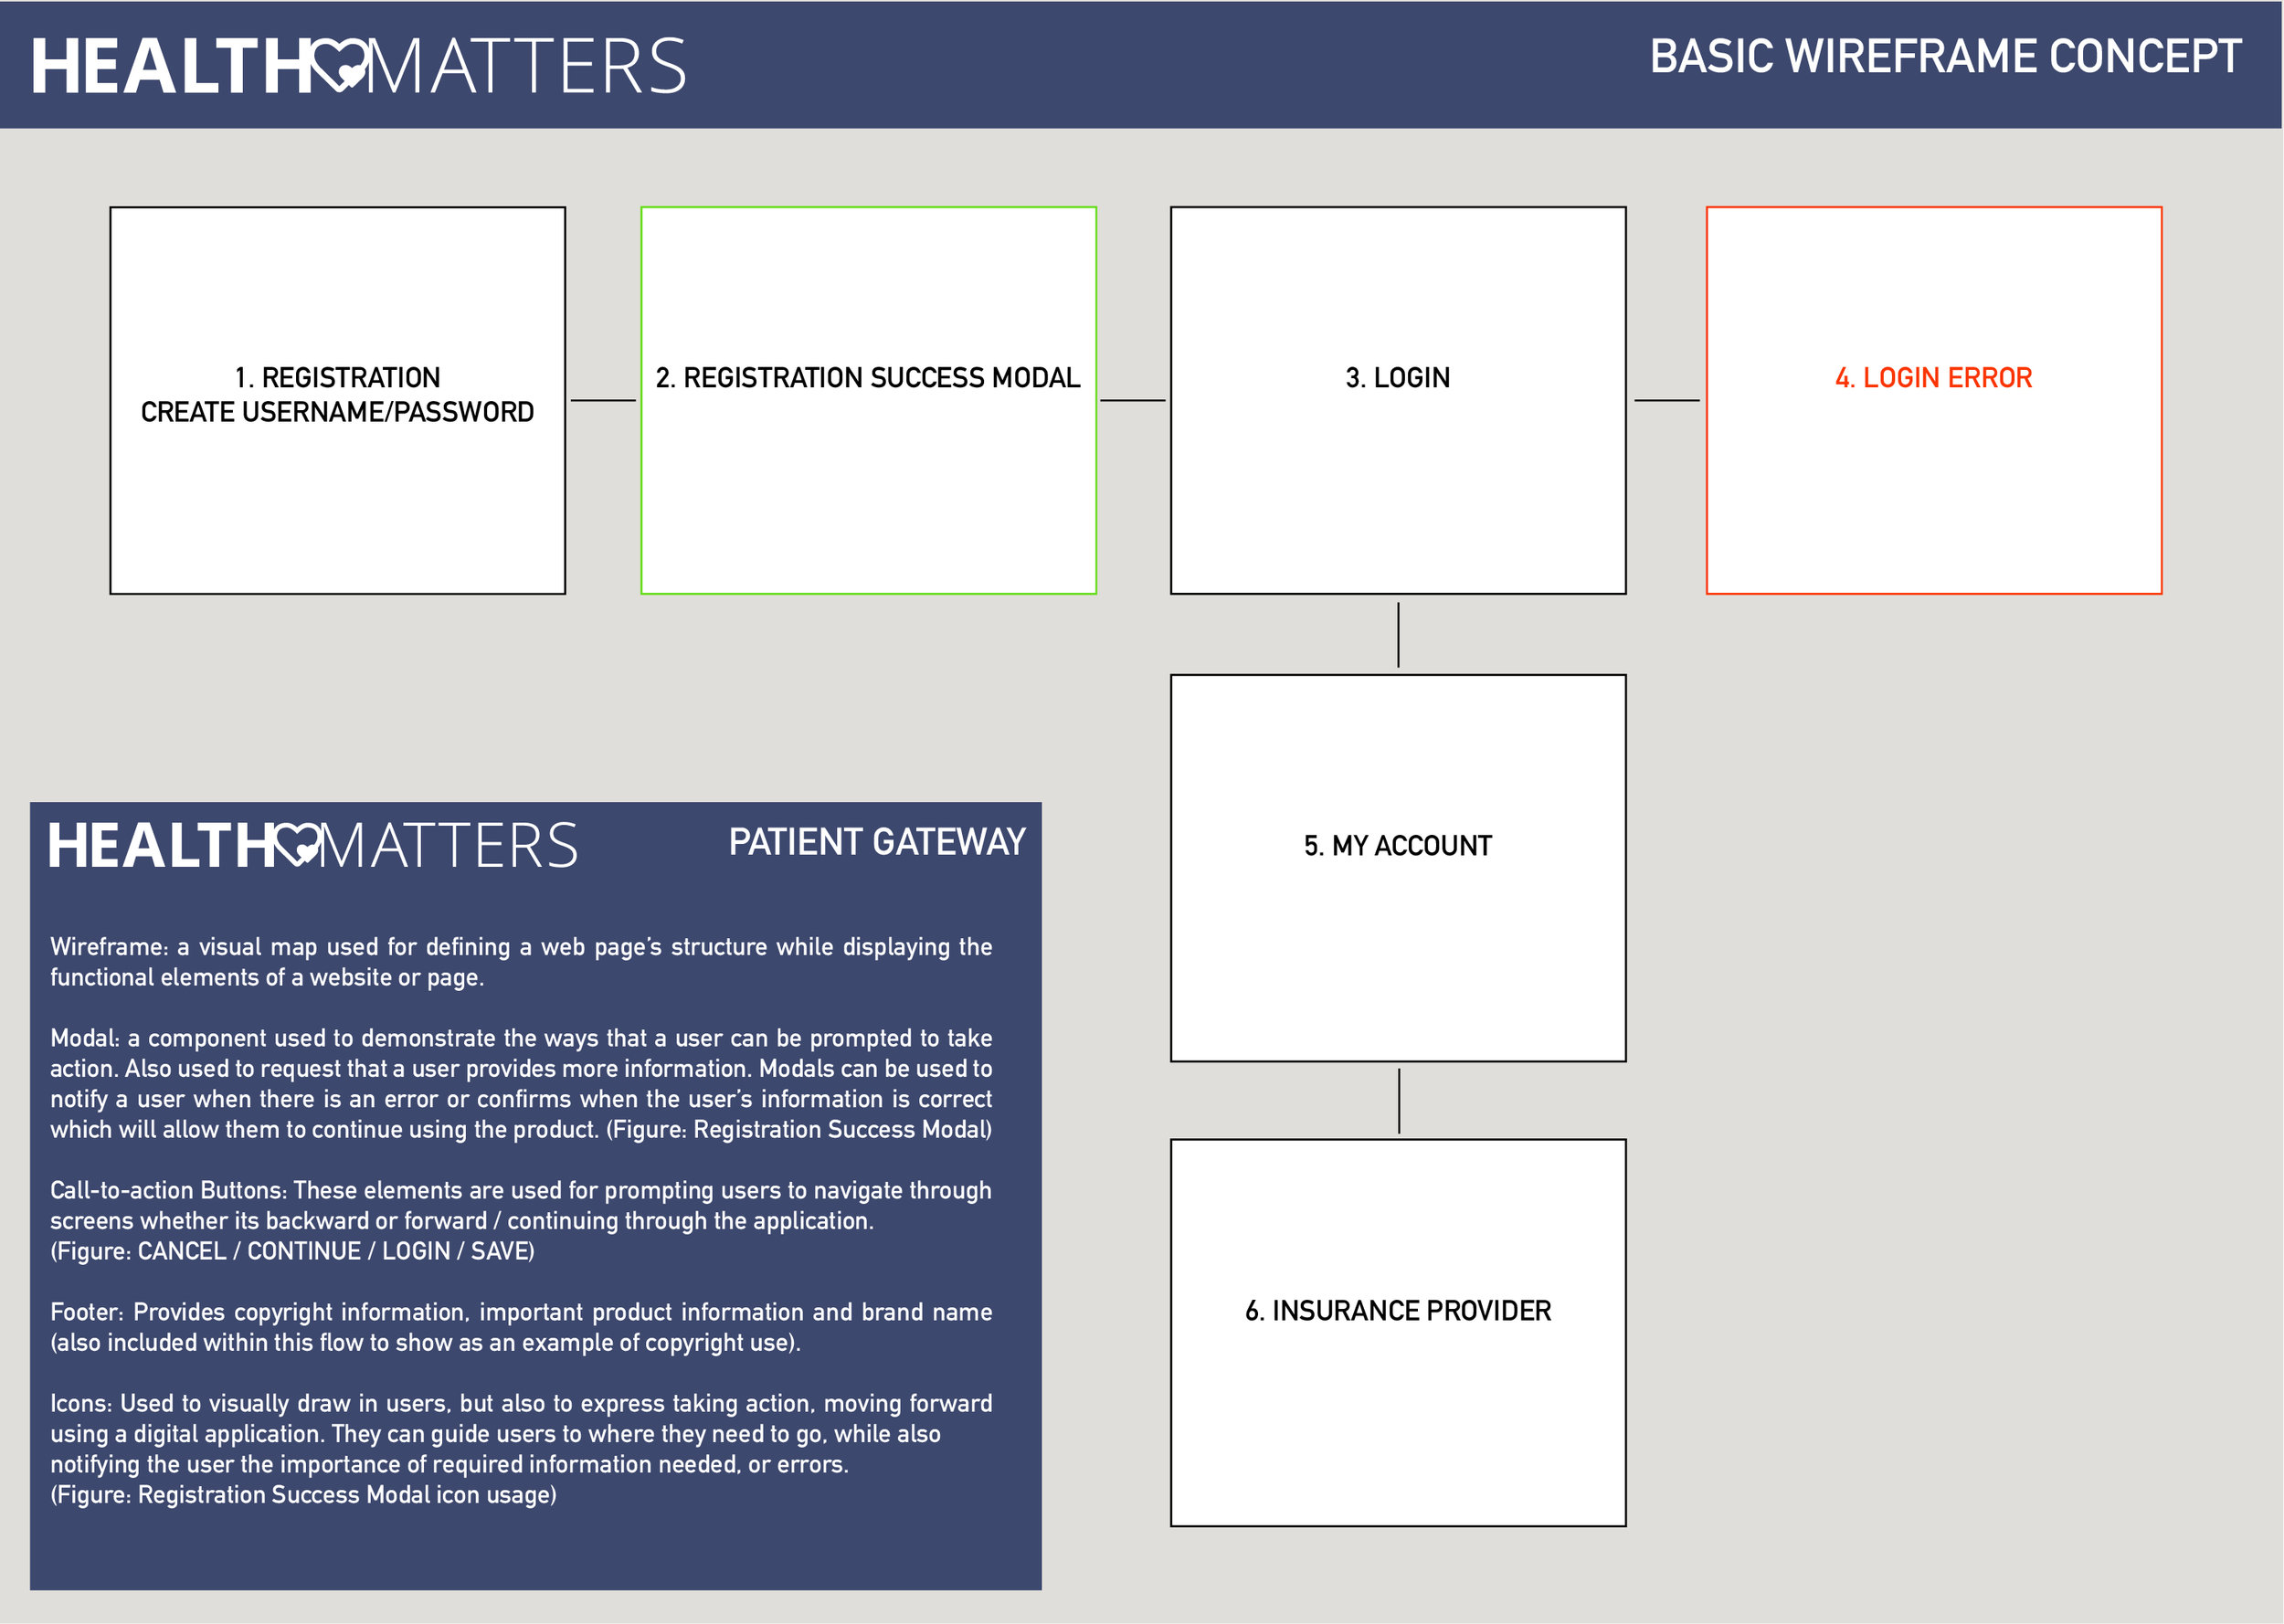 HEALTHMATTERS_Fake_Pages_Wireframe.jpg